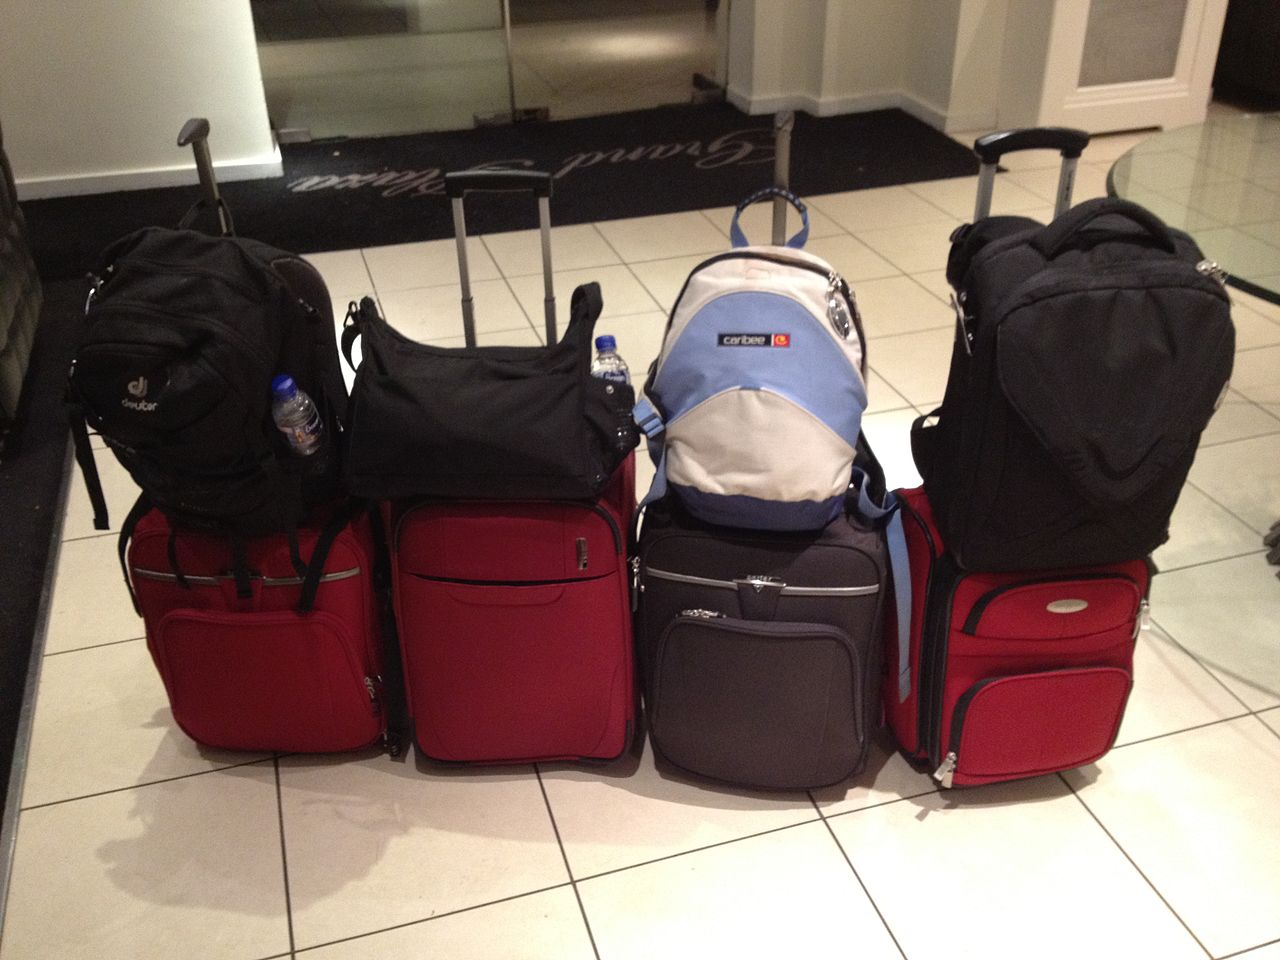 File All Our Luggage Jpg Wikimedia Commons